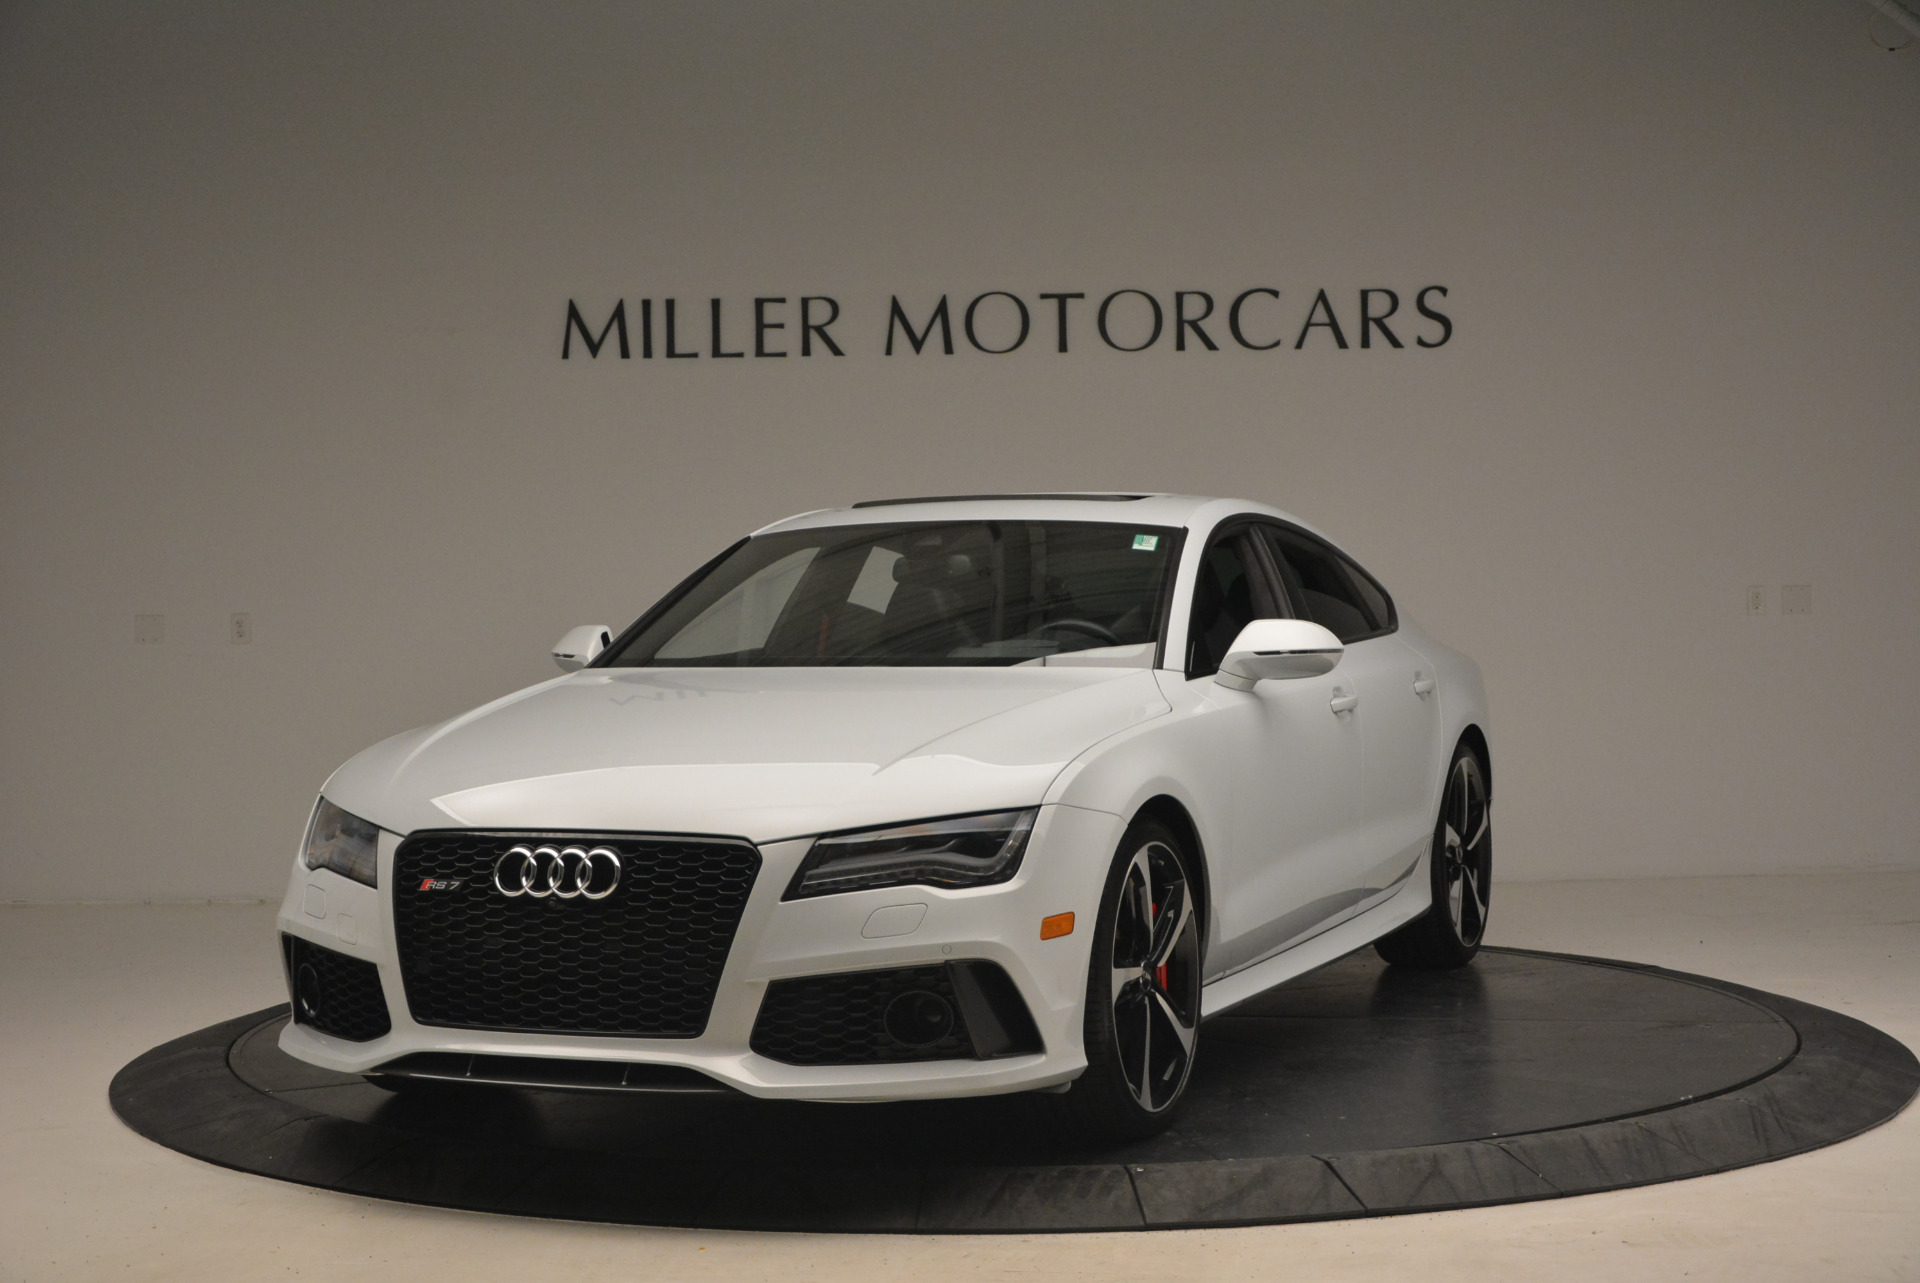 Used 2014 Audi RS 7 4.0T quattro Prestige for sale Sold at Pagani of Greenwich in Greenwich CT 06830 1